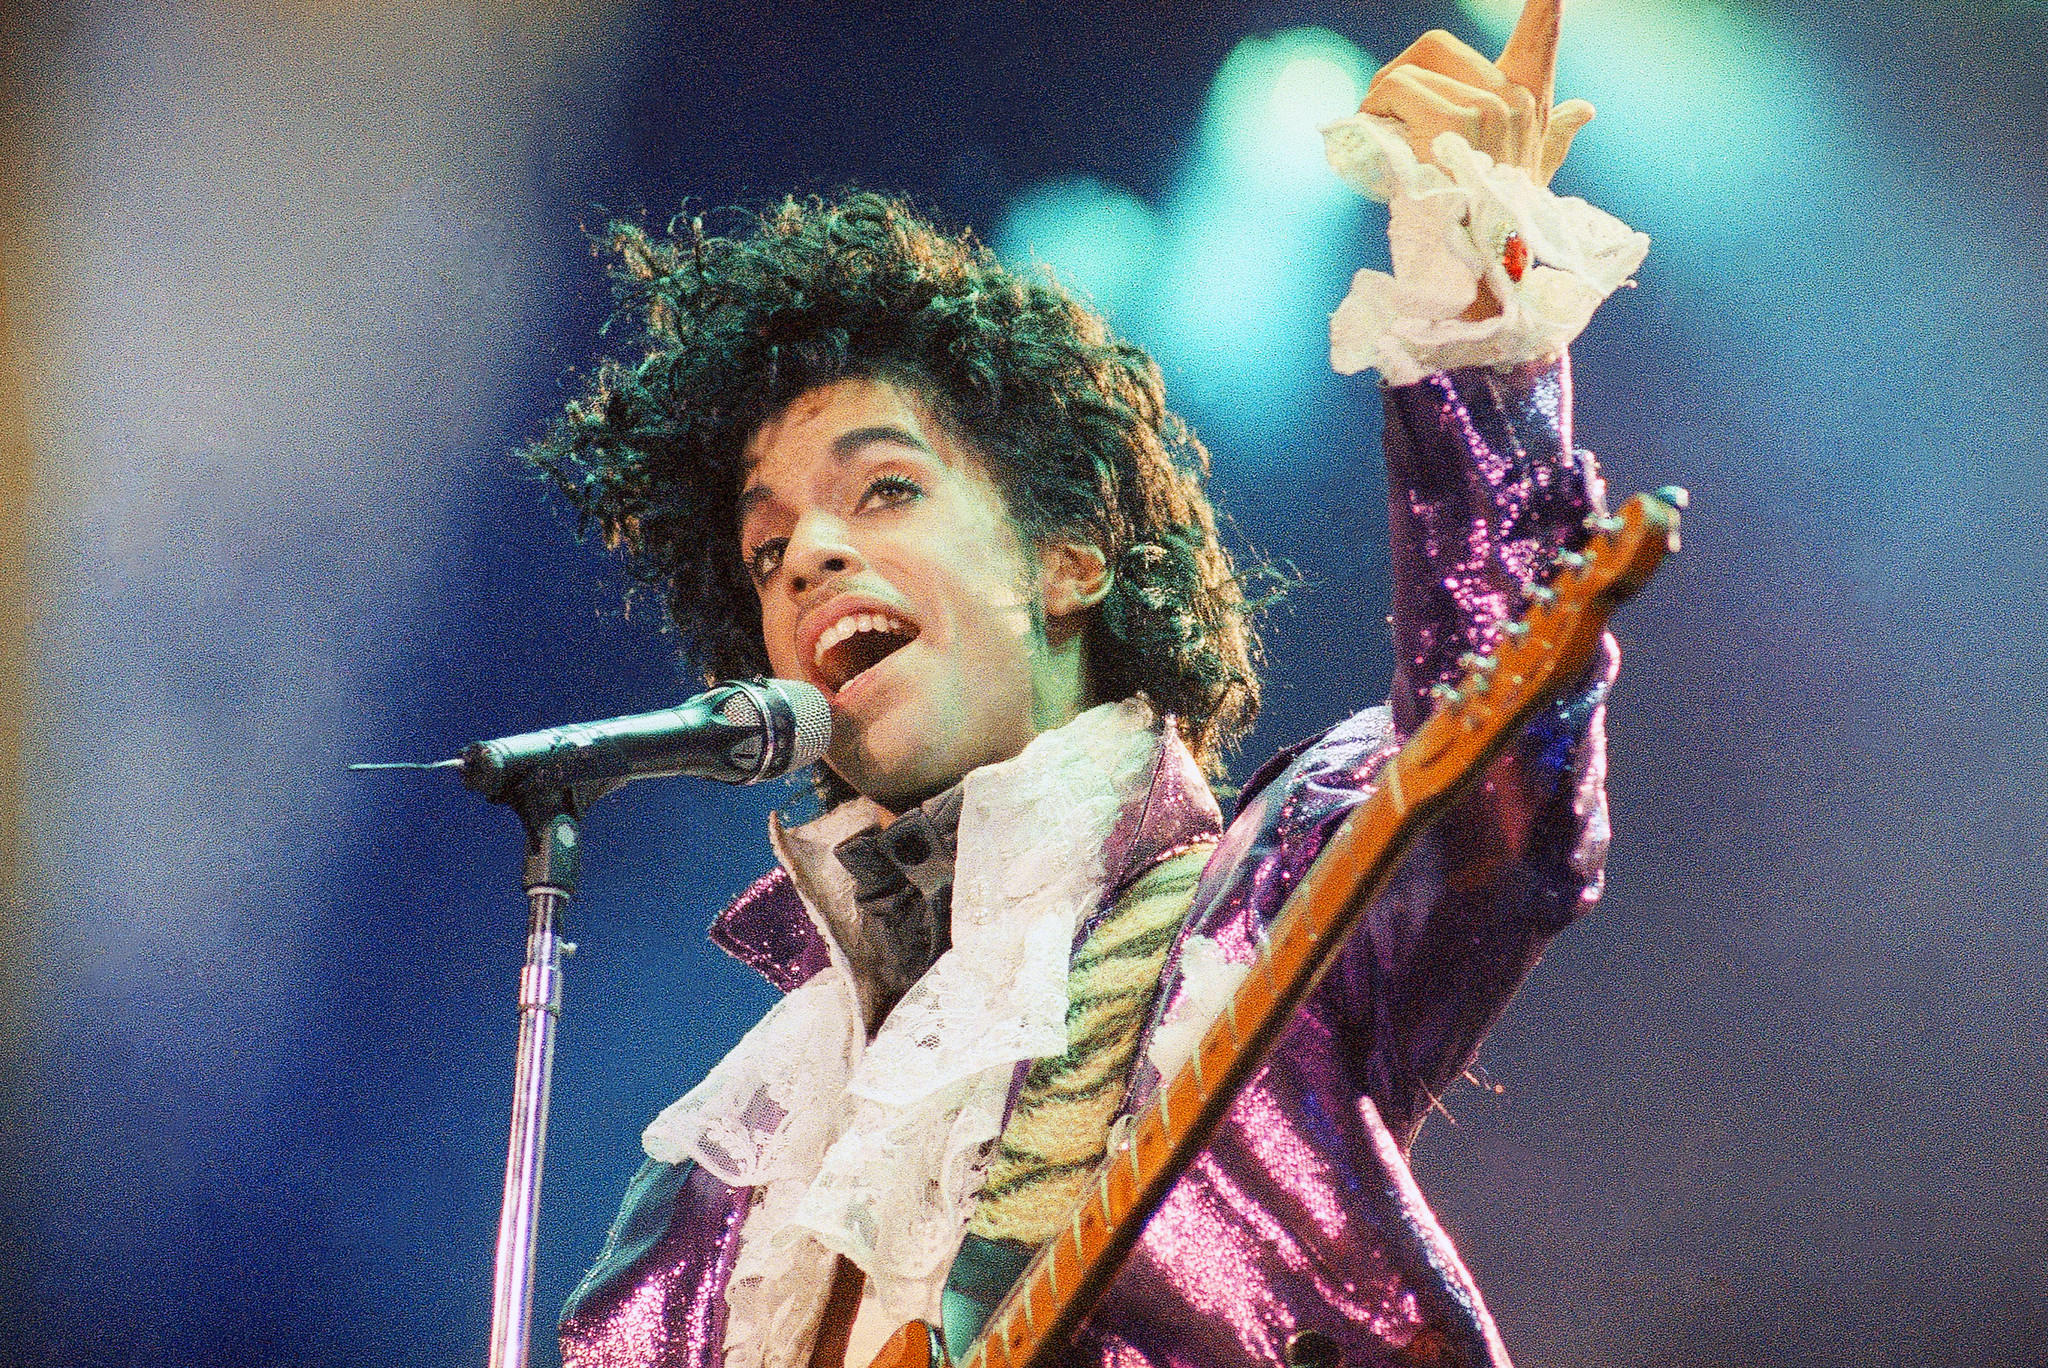 Prince performs at the Forum in Inglewood on Feb. 18, 1985. (Liu Heung Shing / Associated Press)